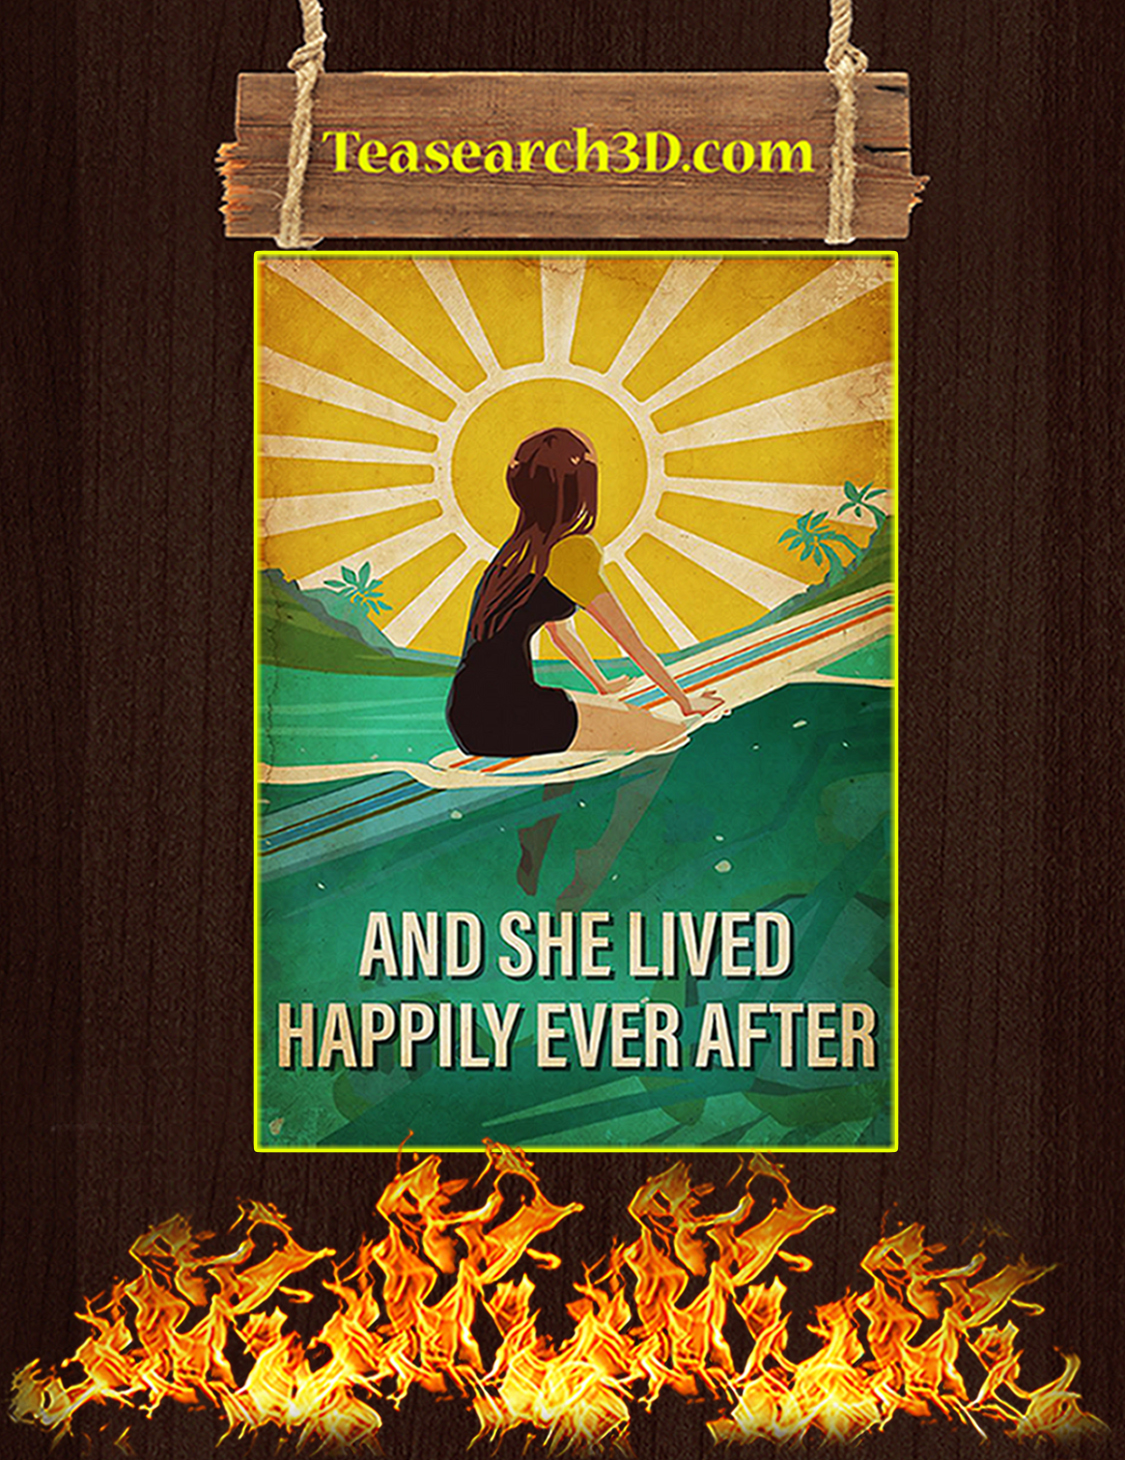 Surfing And she lived happily ever after poster A3